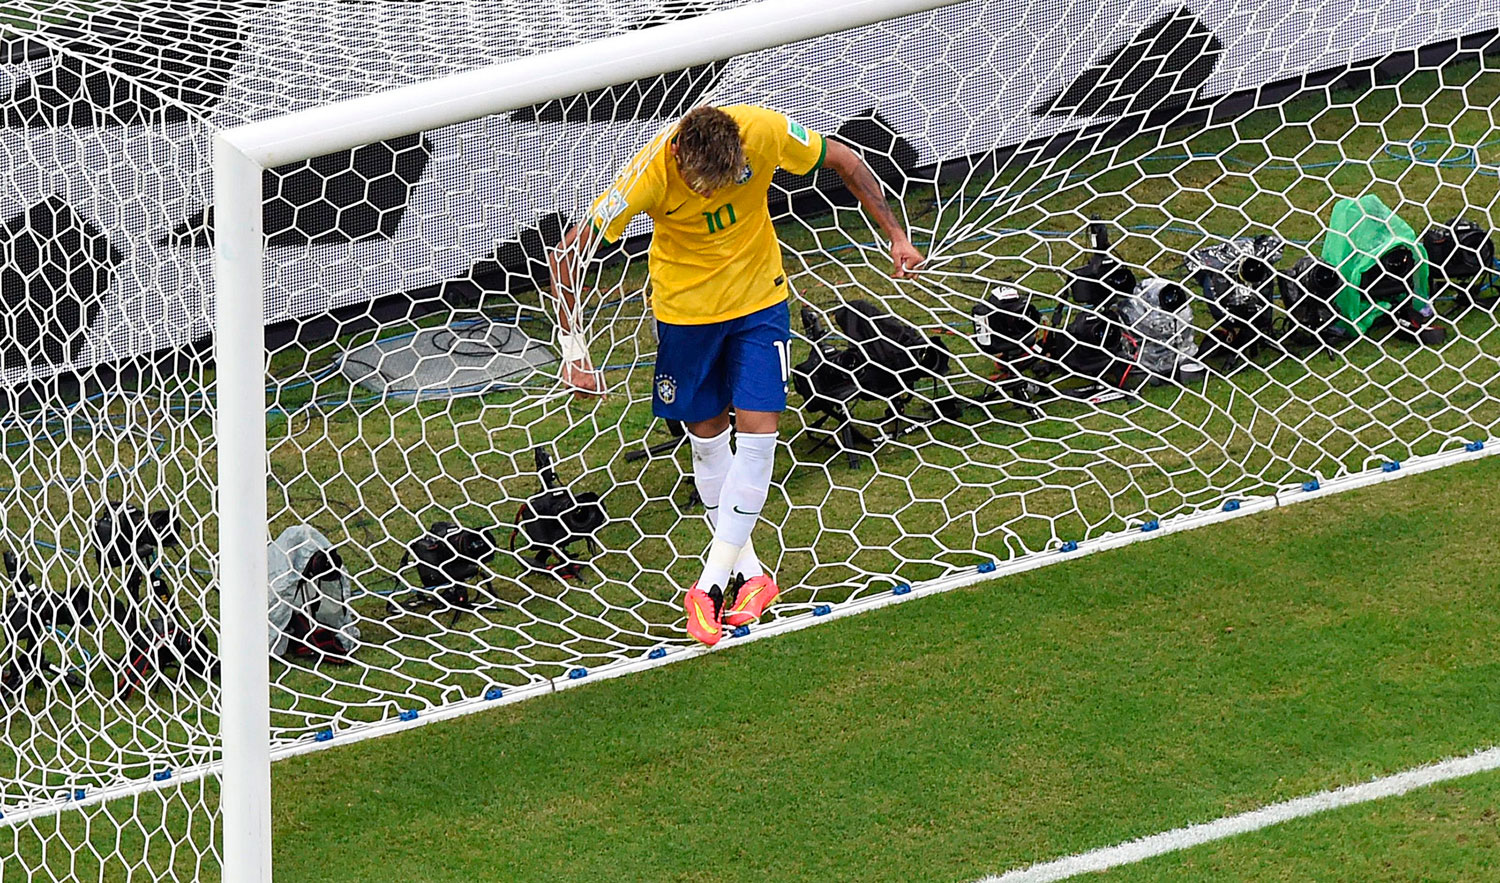 Brazil's forward Neymar reacts after missing a goal opportunity during a match between Brazil and Mexico in the Castelao Stadium in Fortaleza, Brazil on June 17, 2014.